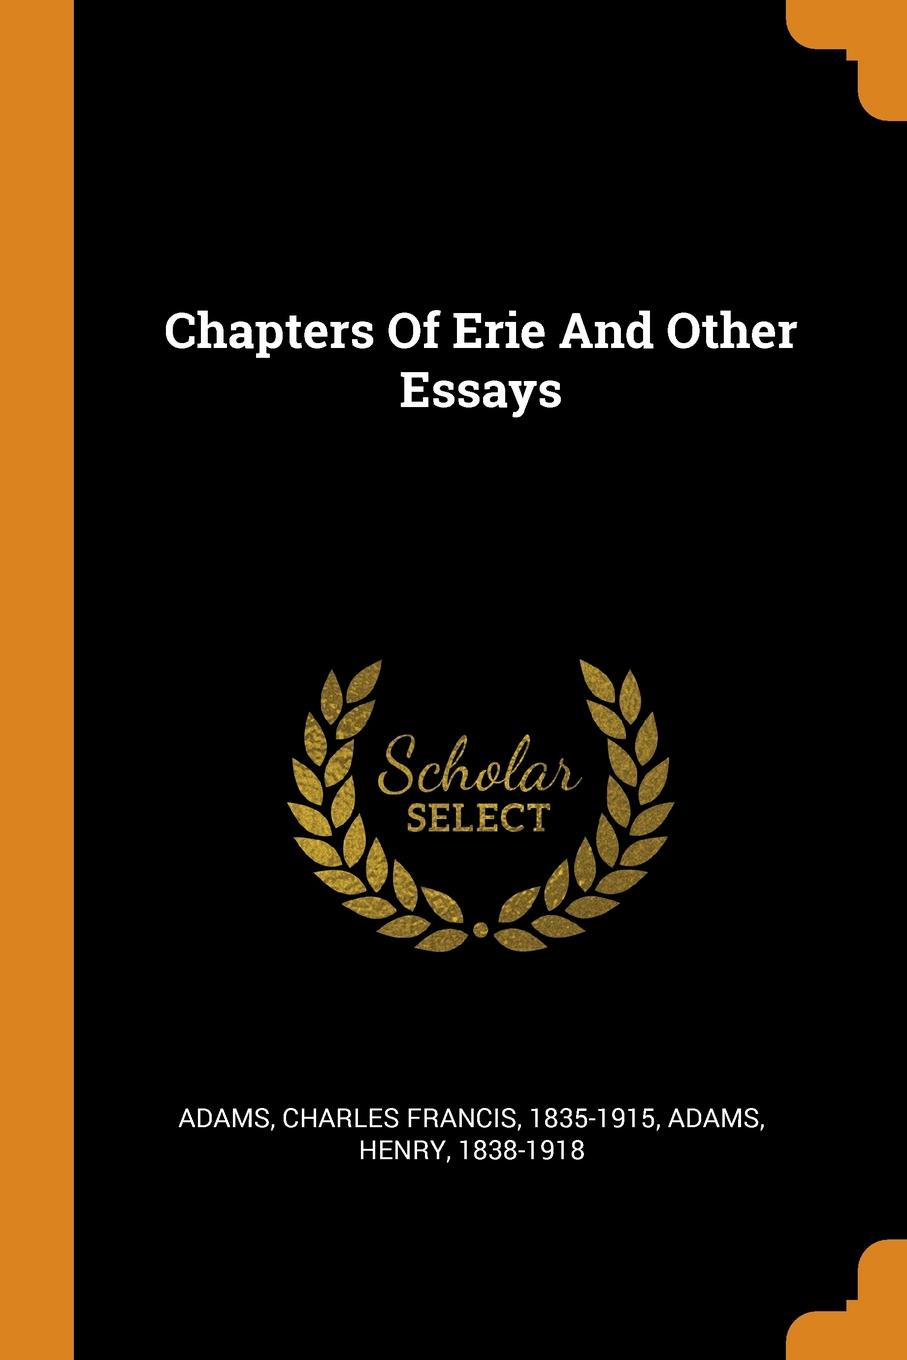 Adams Henry 1838-1918 Chapters Of Erie And Other Essays